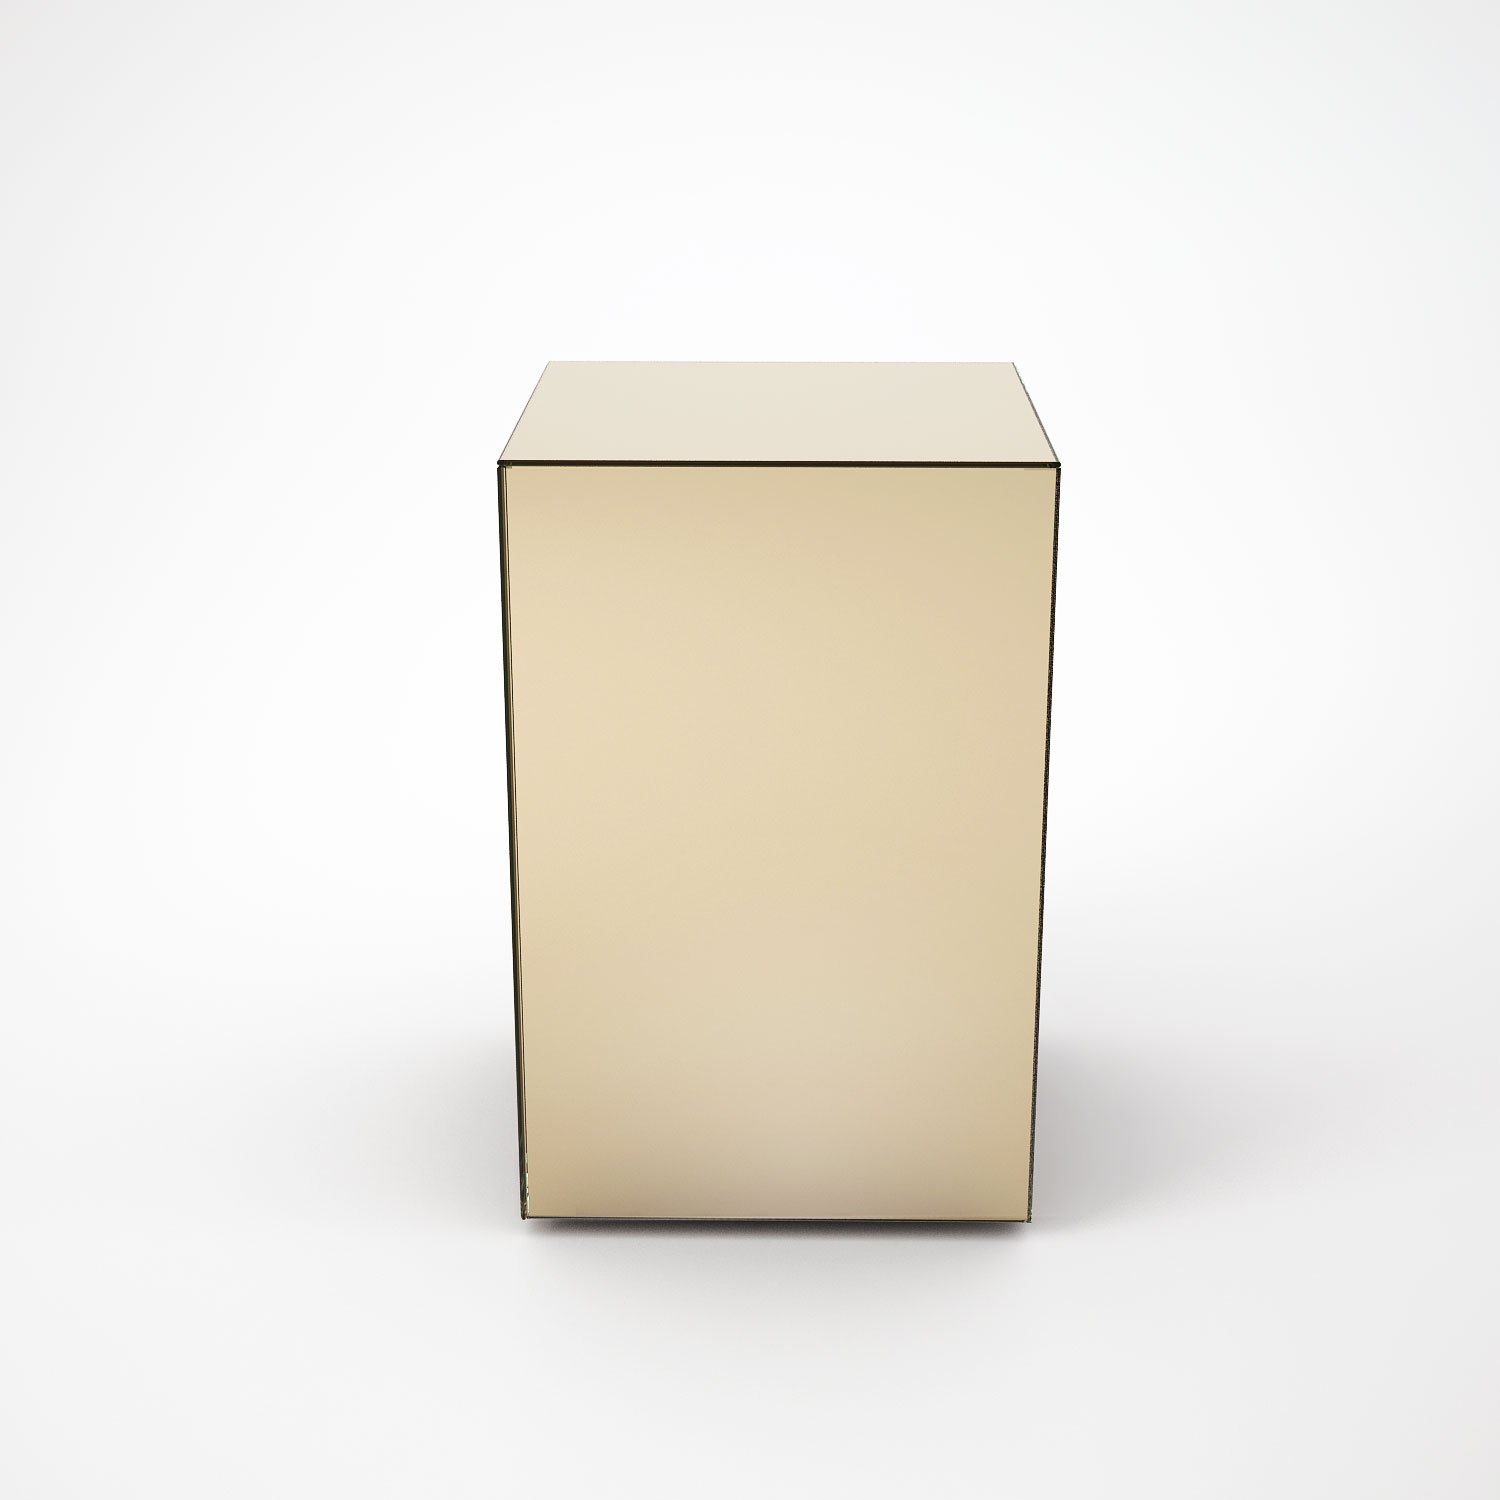 mirrored side table. Klarity / Glass Furniture Shop Coffee Table Mirrored Tables Bronze Side By MirrorBox